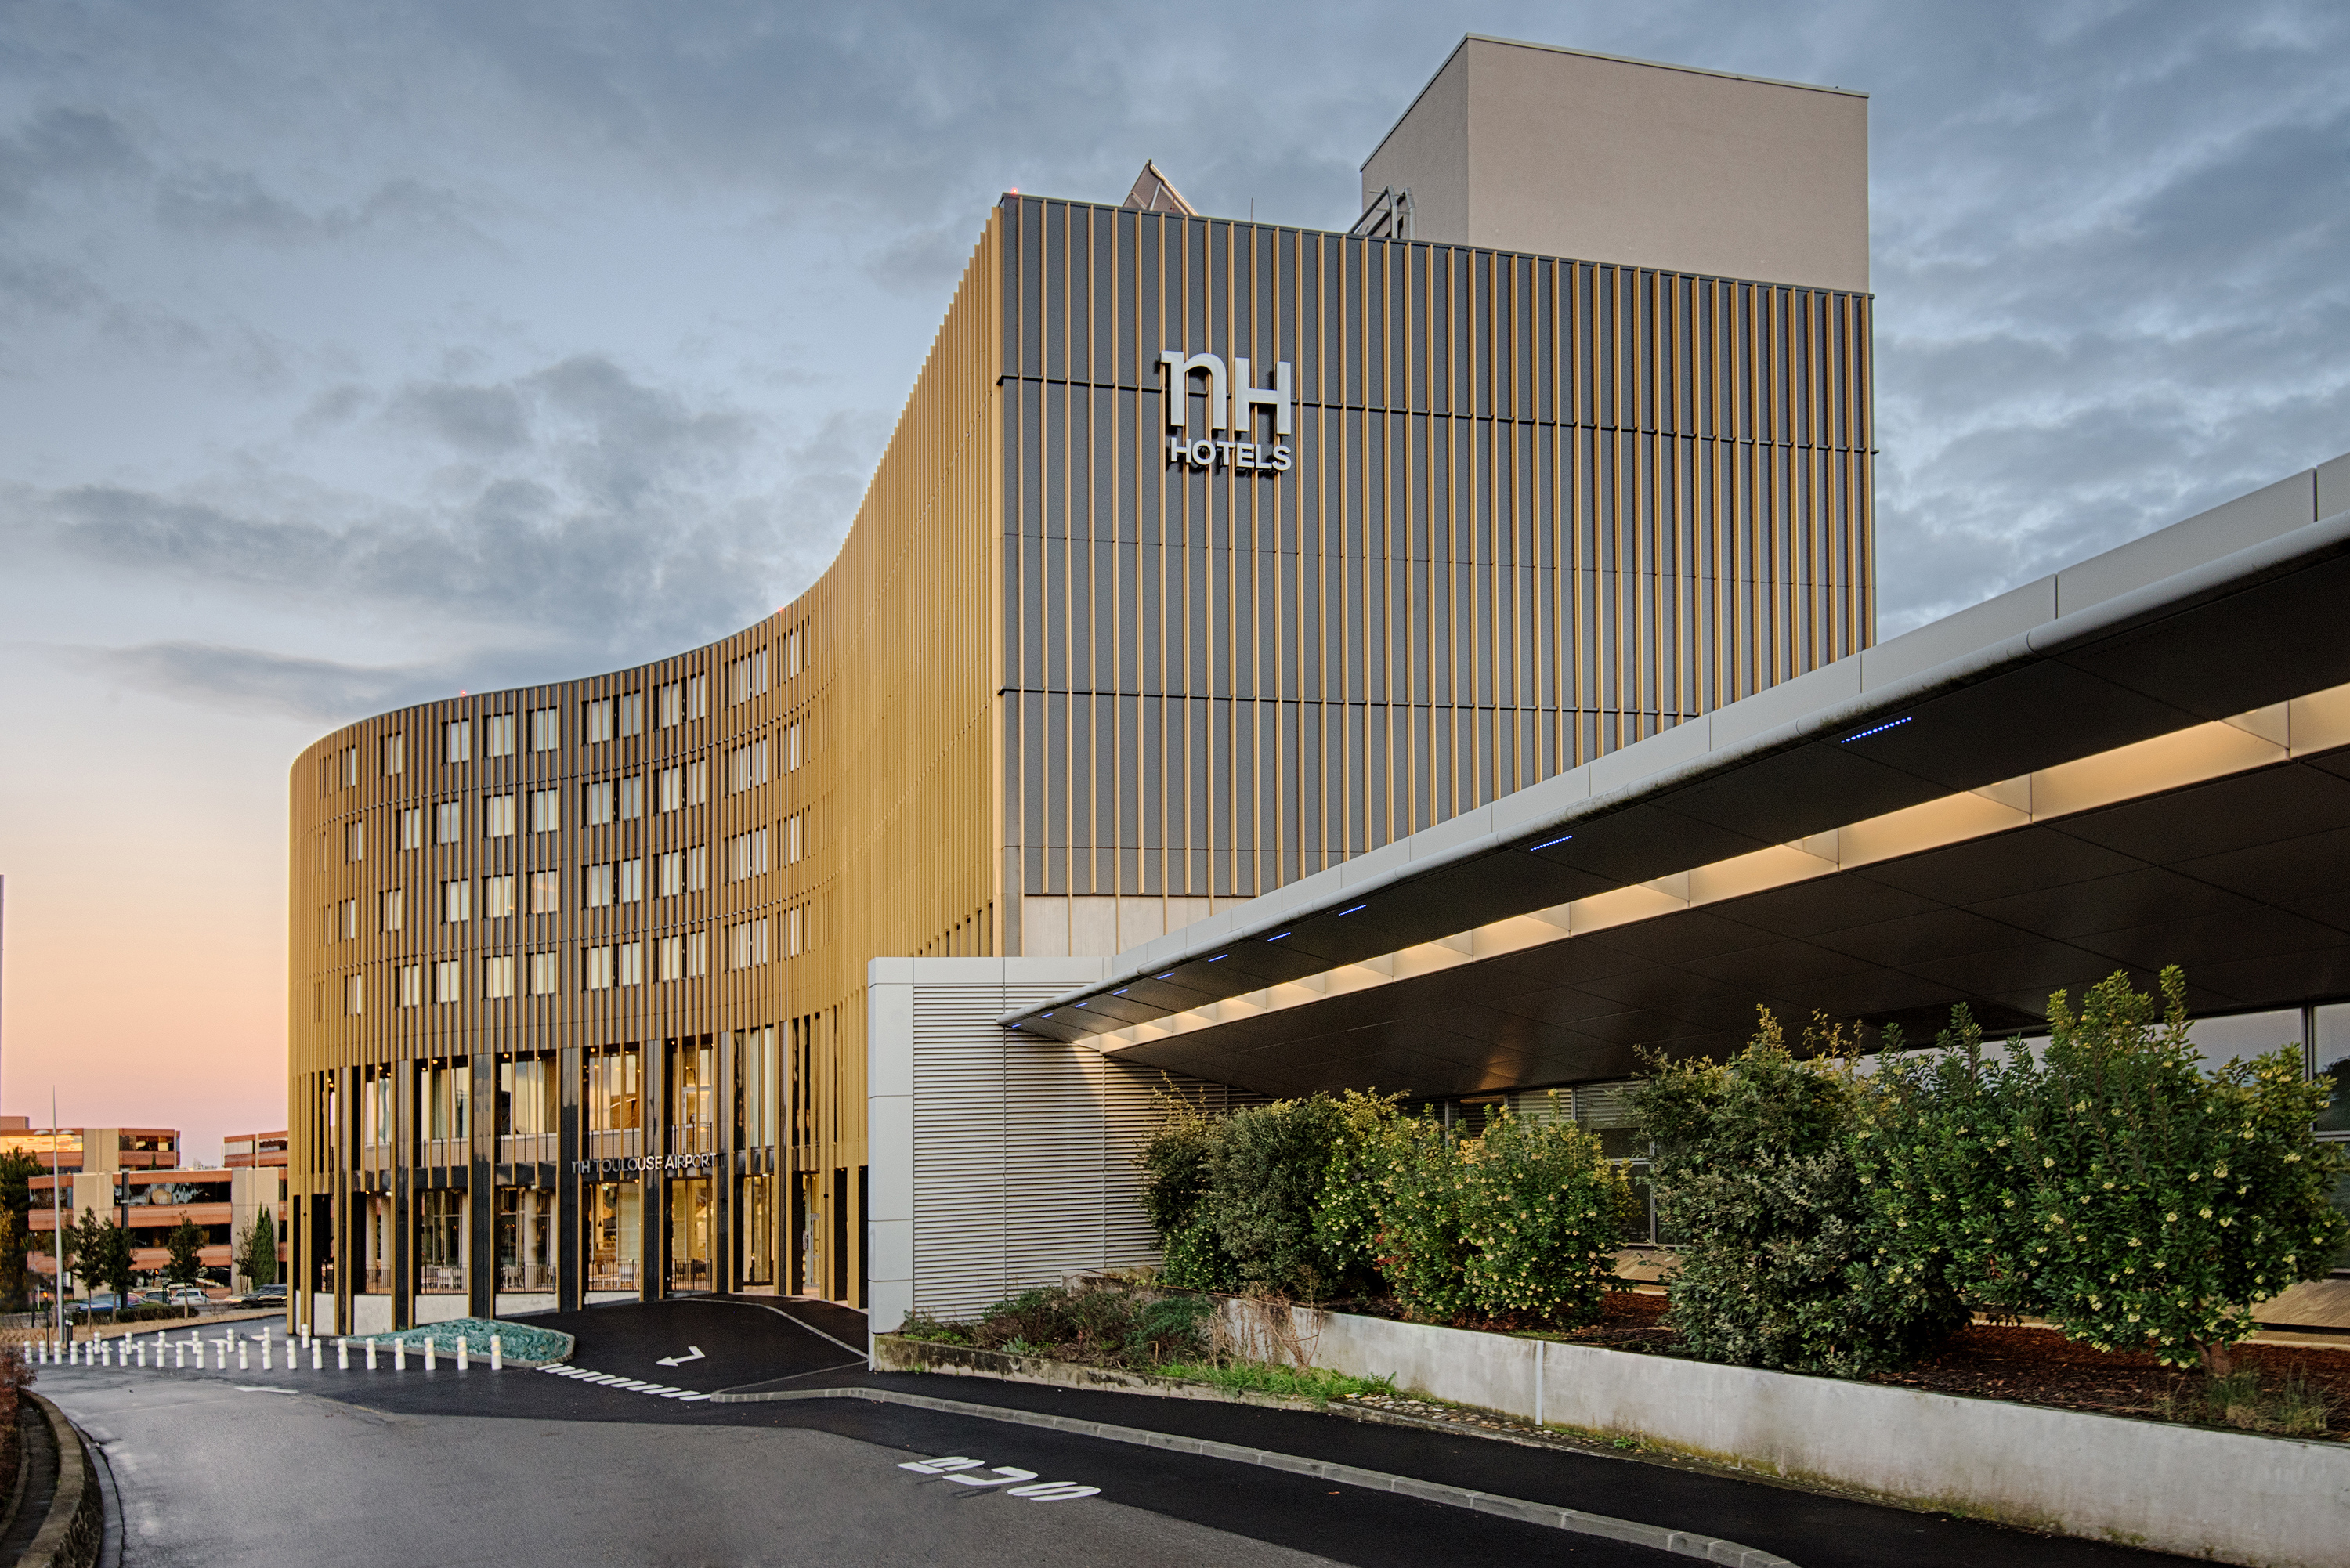 NH HOTEL TOULOUSE AIRPORT